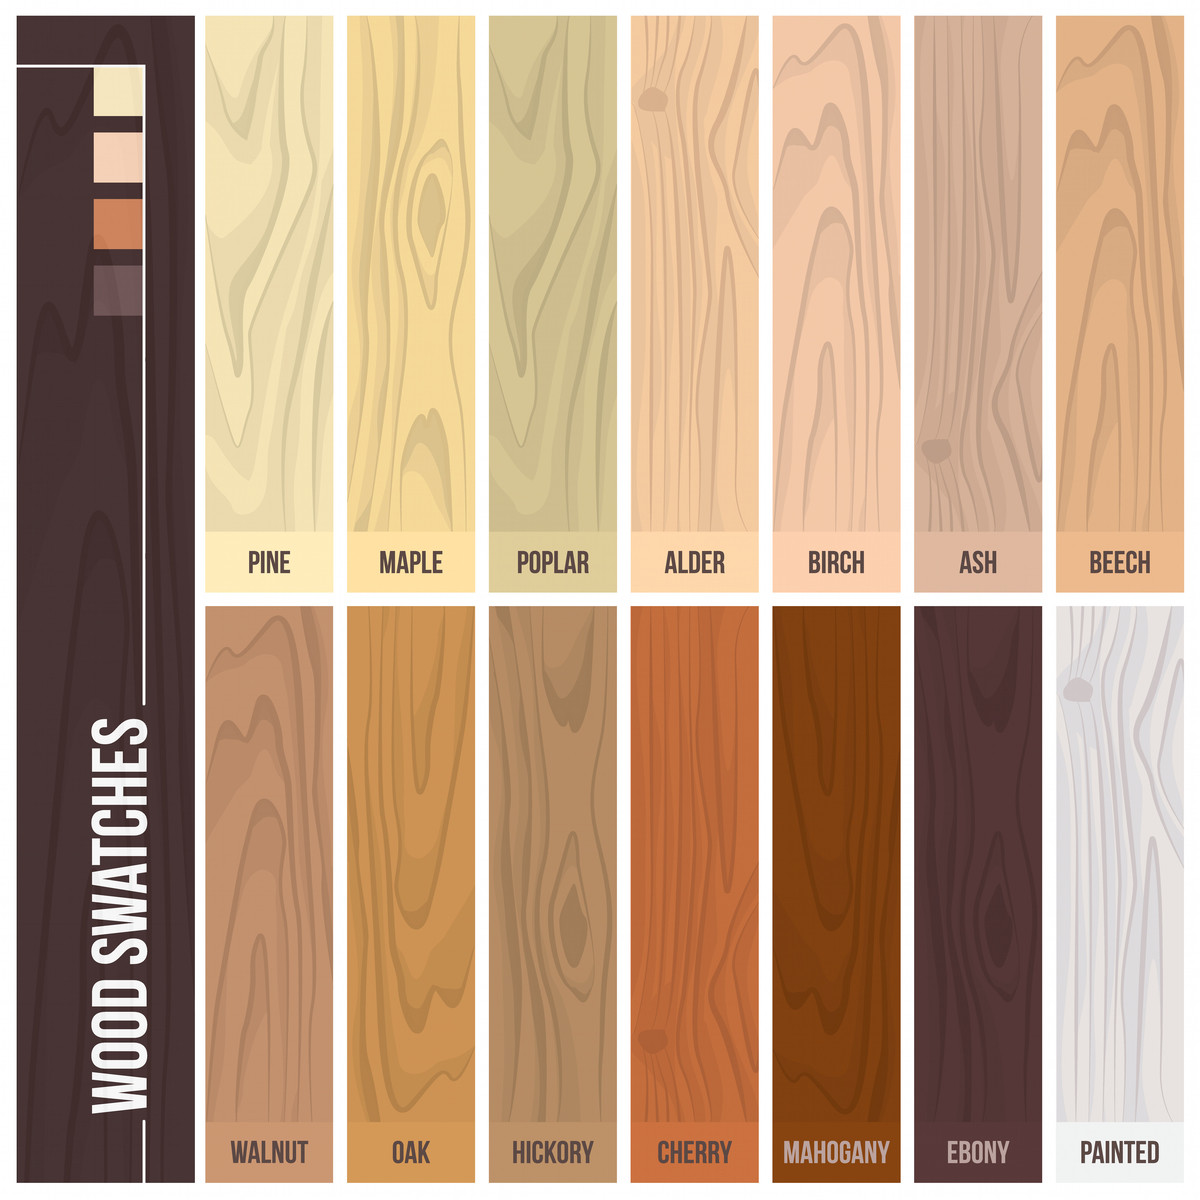 Oak Hardwood Floor Filler Of 12 Types Of Hardwood Flooring Species Styles Edging Dimensions for Types Of Hardwood Flooring Illustrated Guide